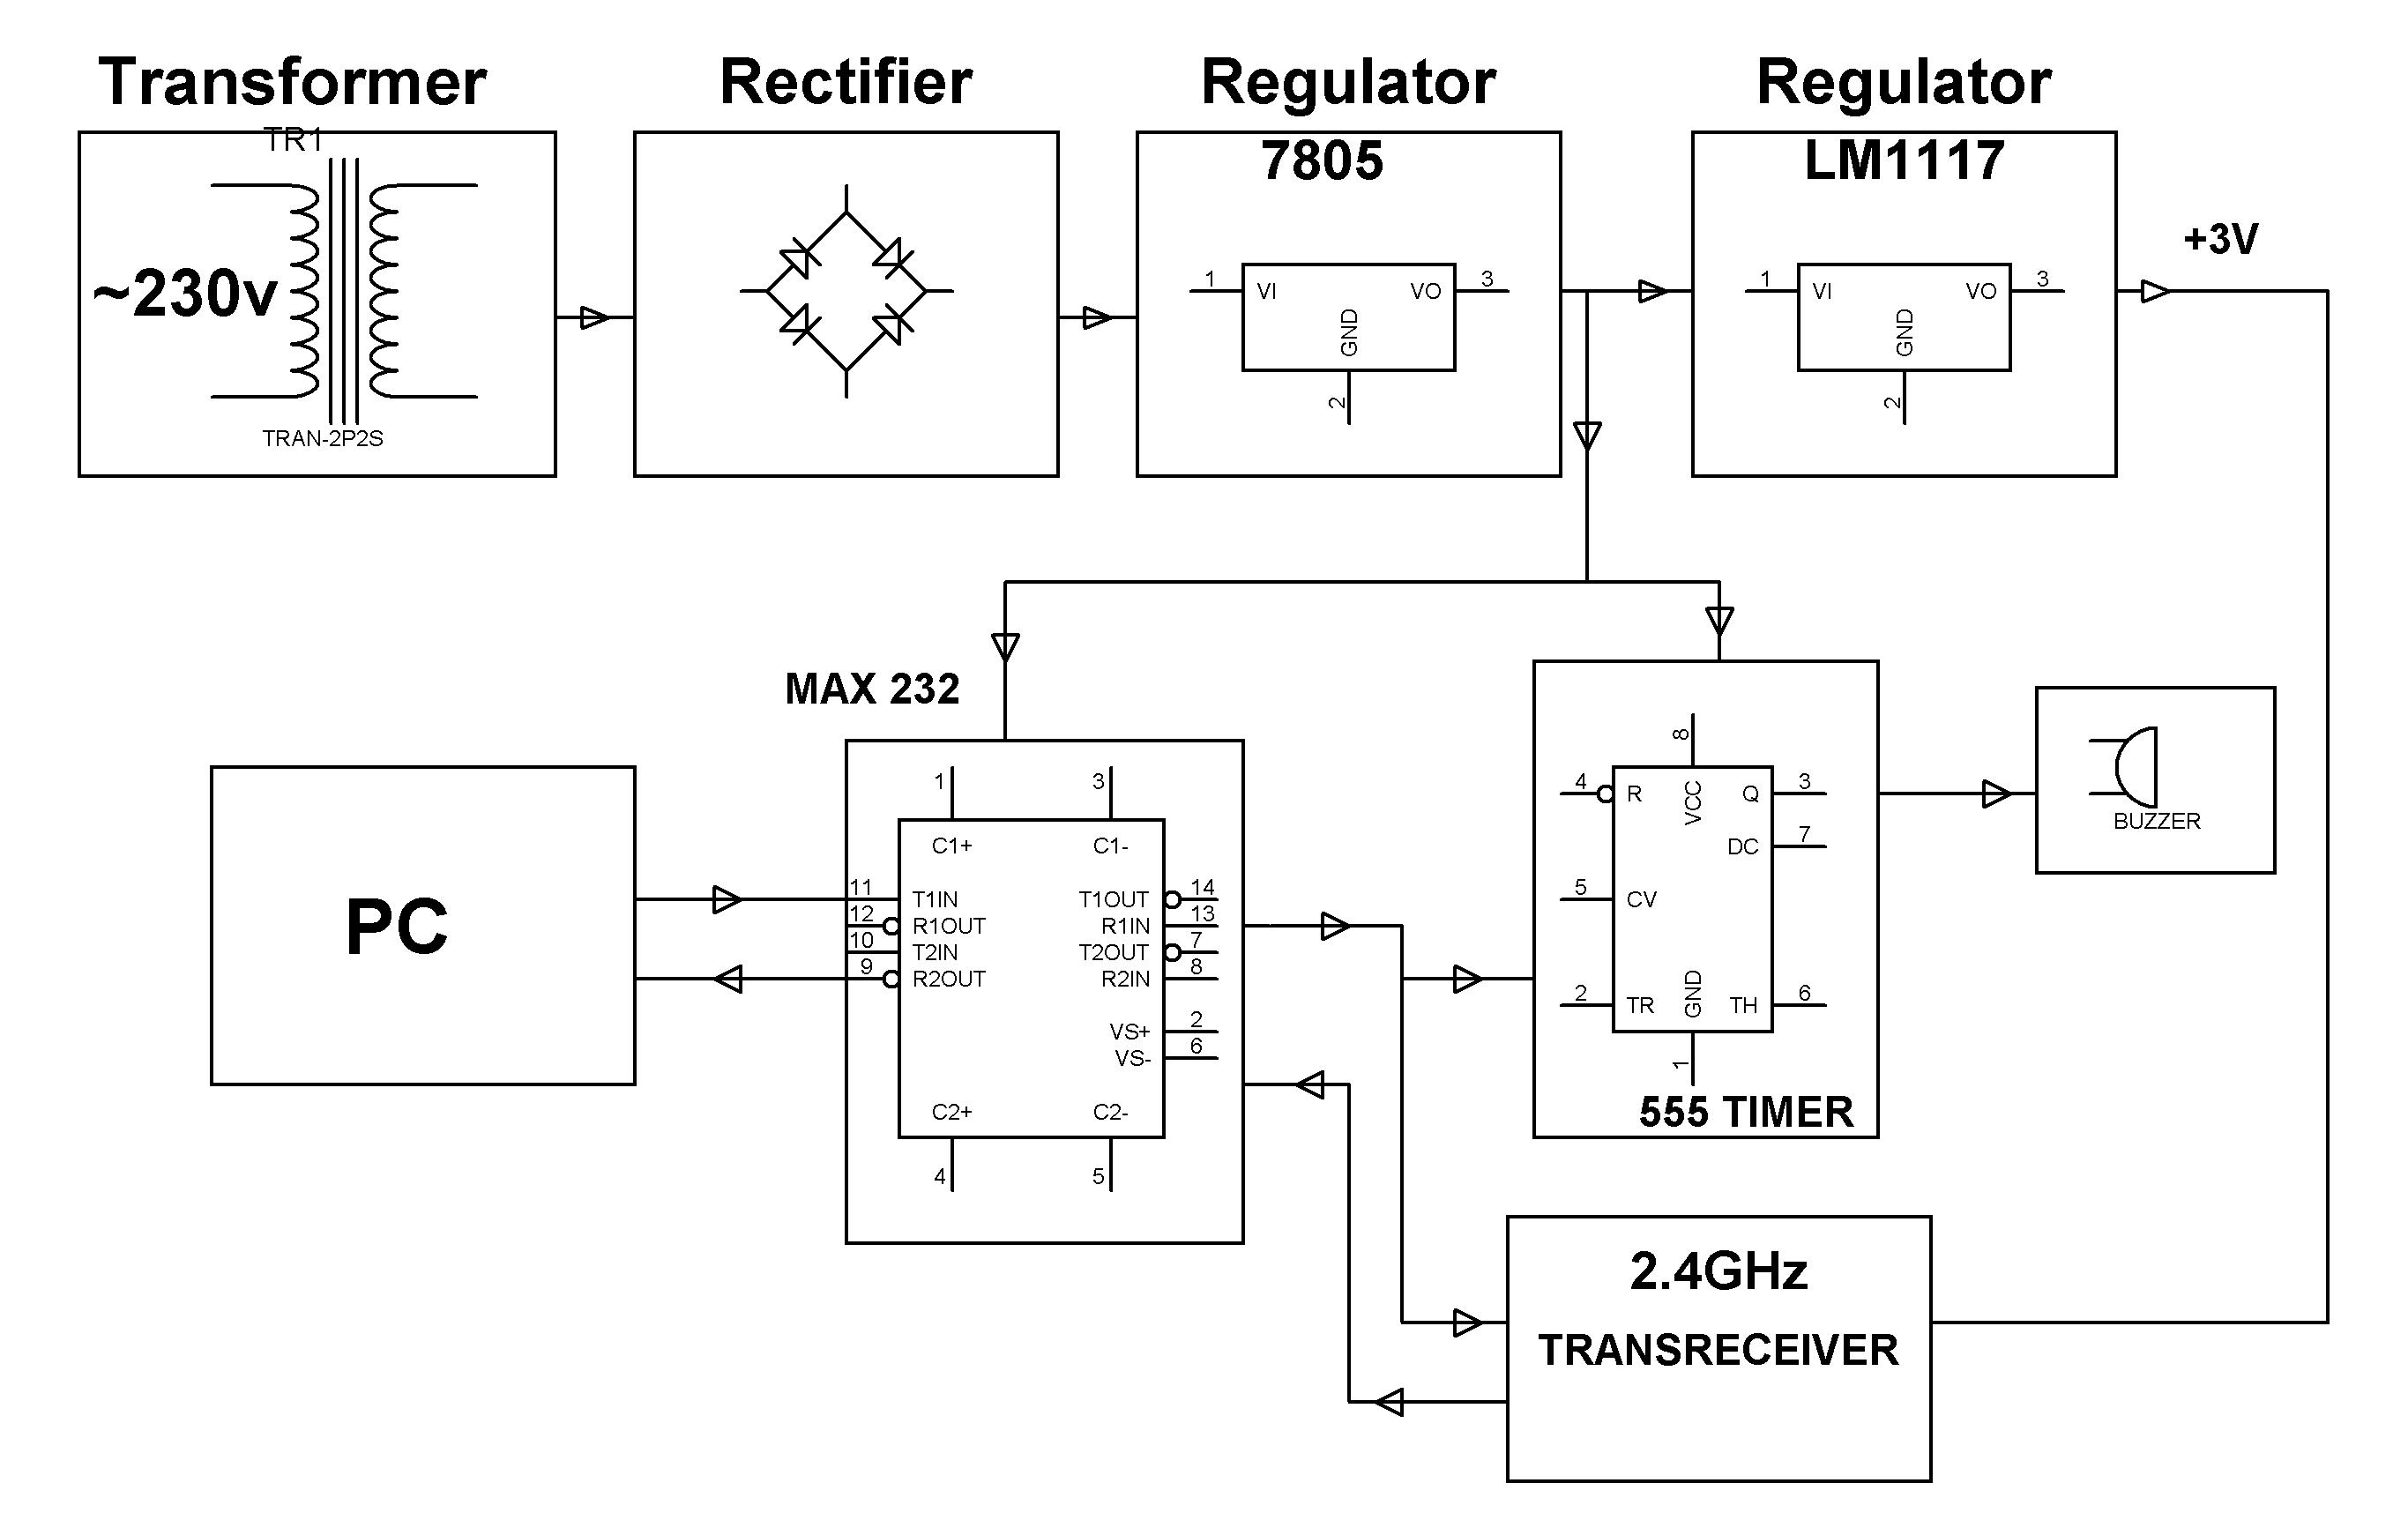 Wireless PCCommunication using Transceiver_BlockDiagram overview of wireless pc communication system using transceiver